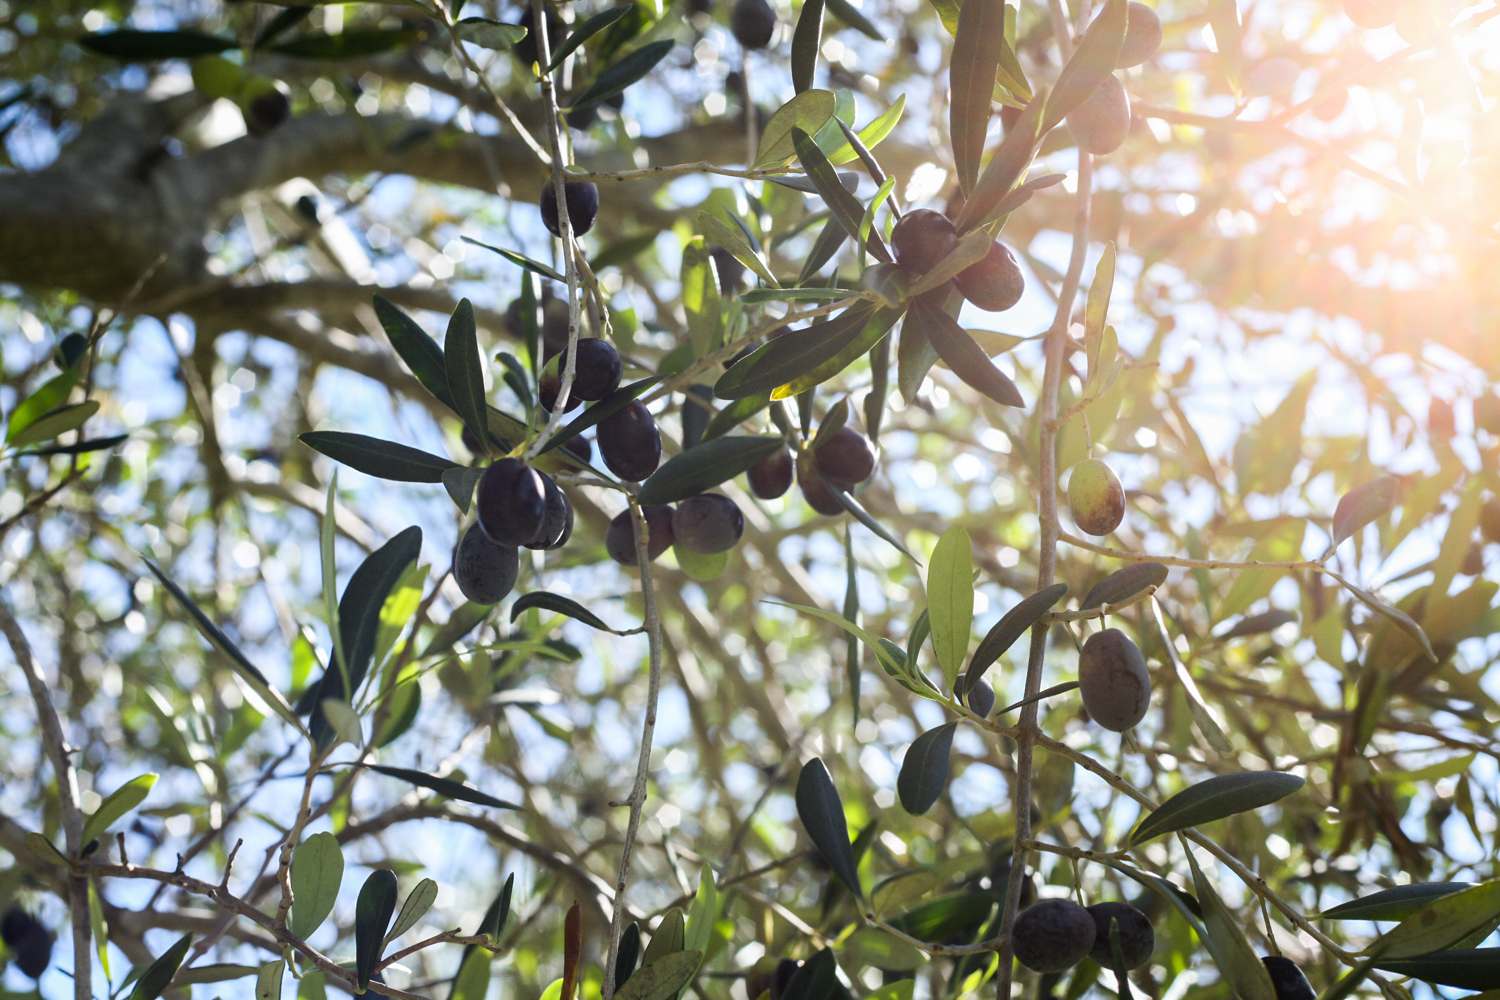 Olives ripening in perfect west australian sunlight